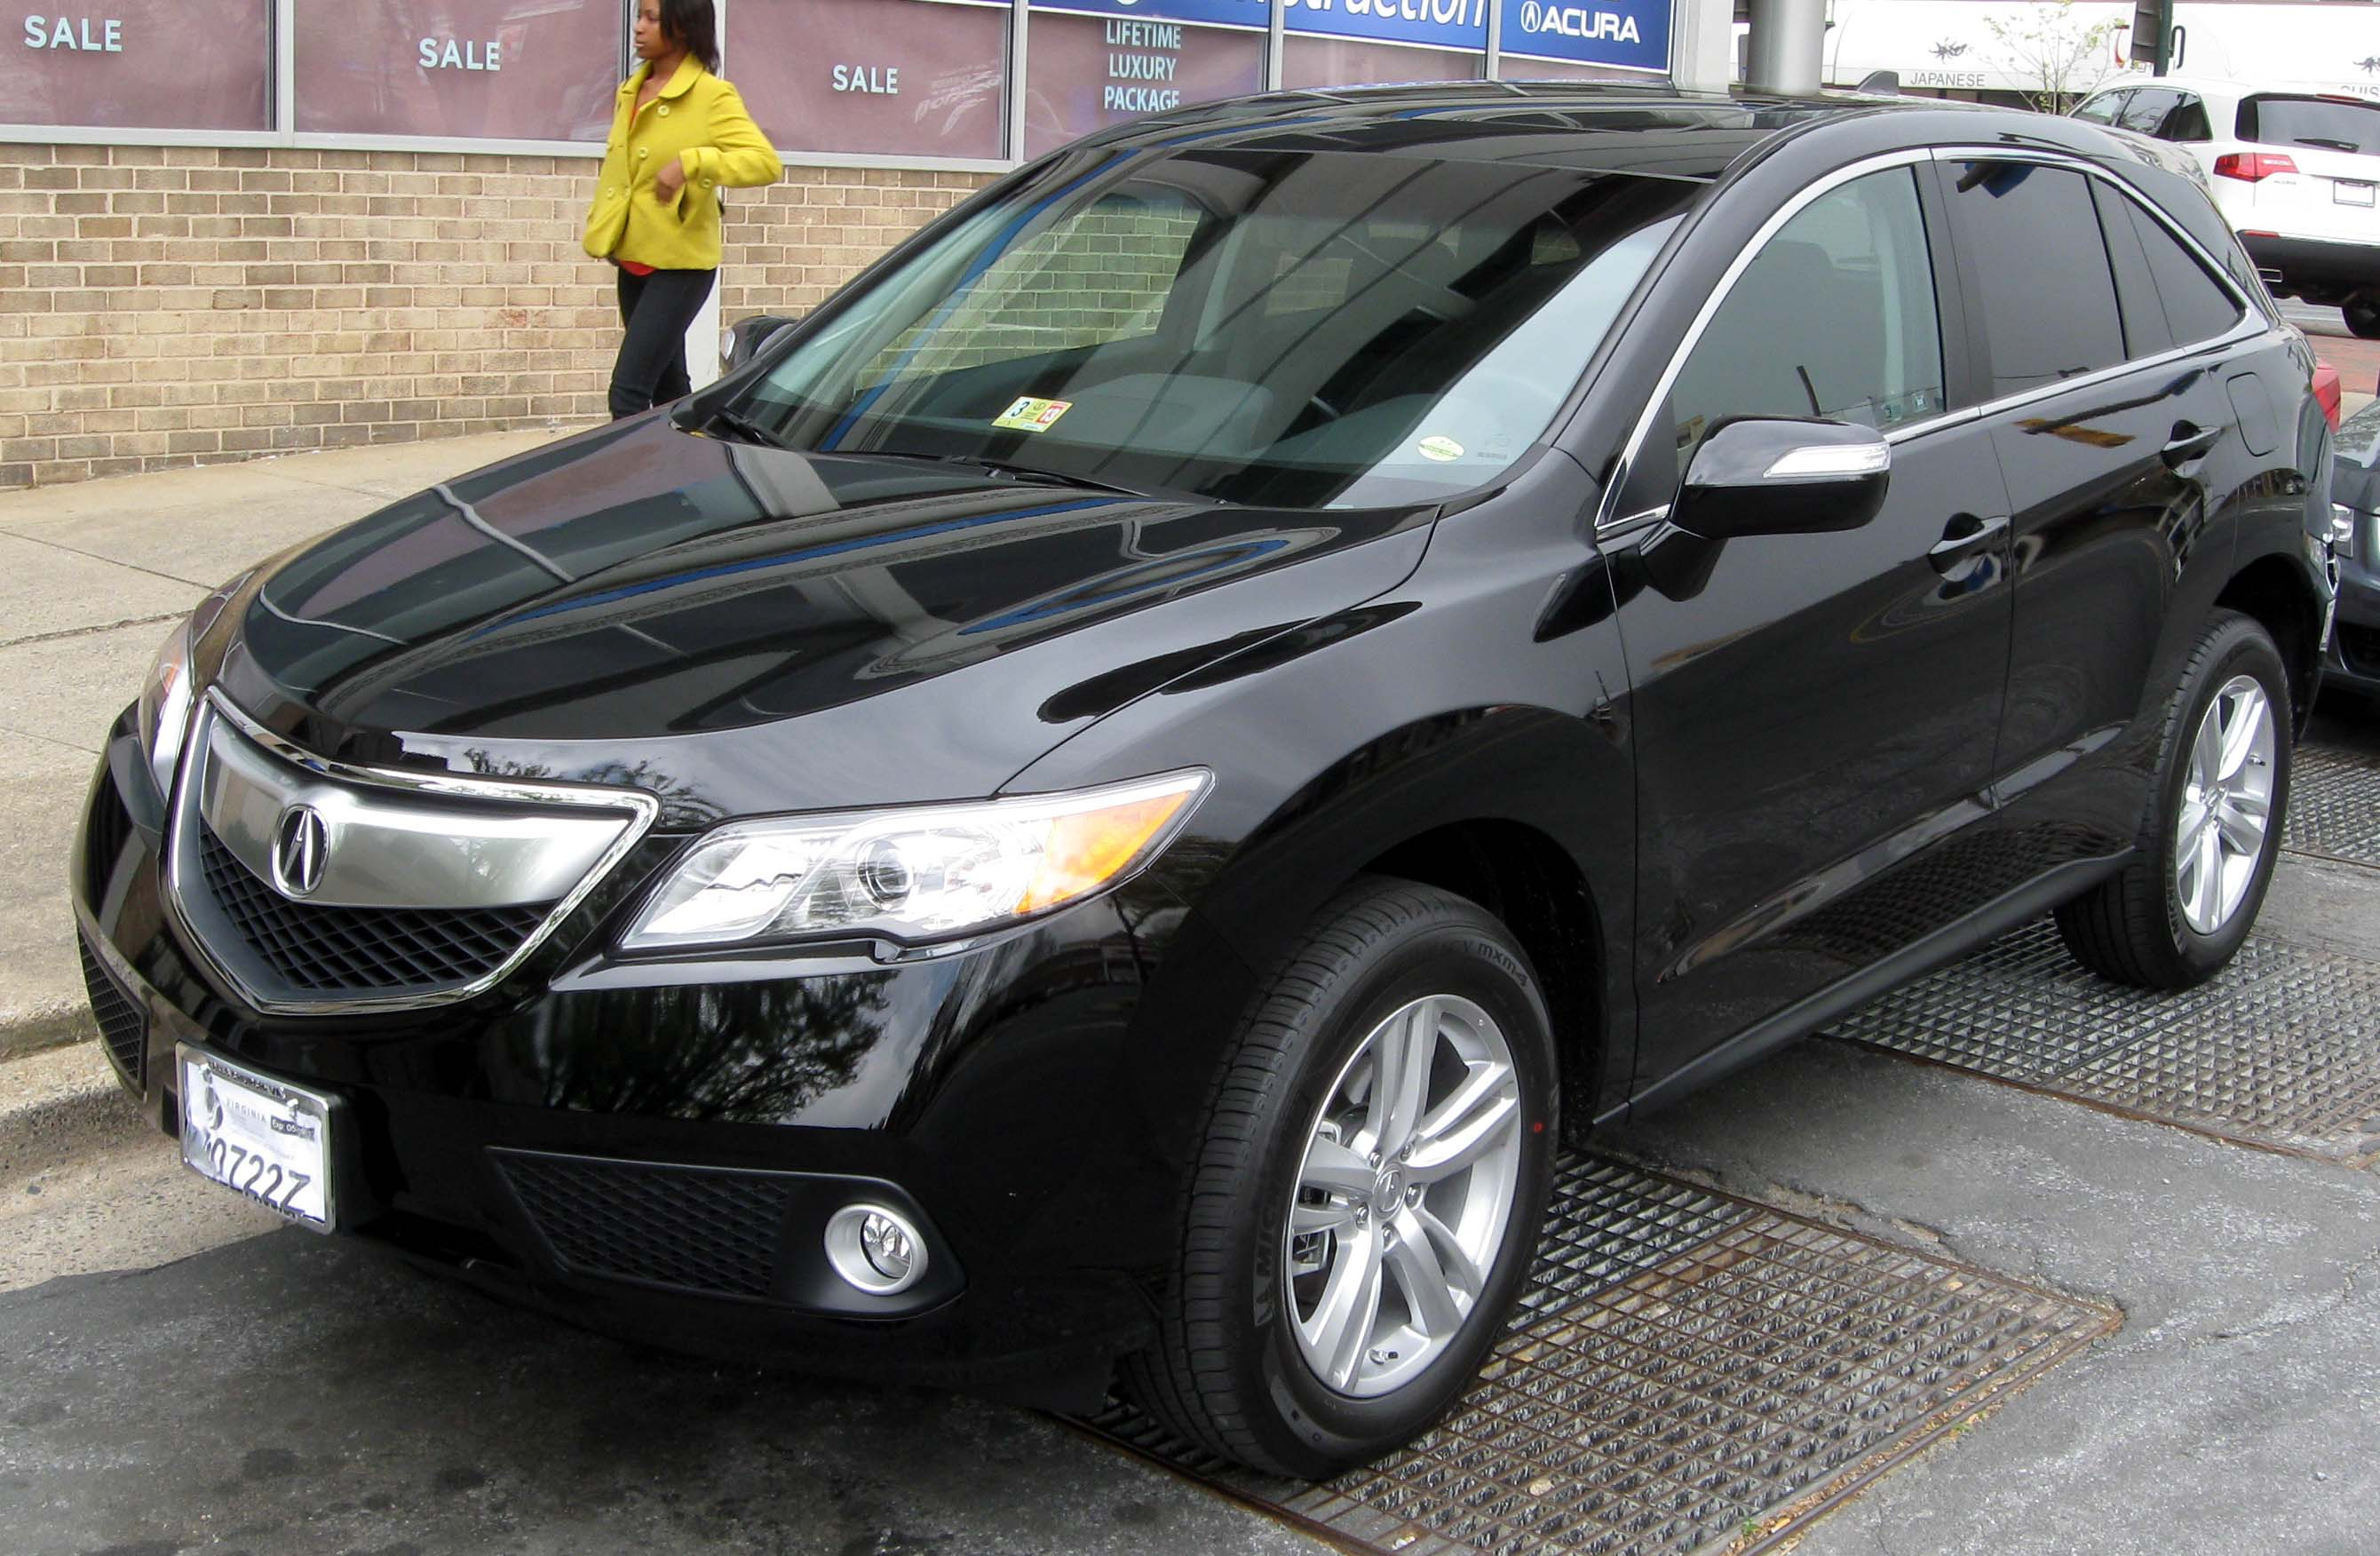 gains new acura car battle undergoes refinement s picks red in cuv fr site introductions rdx smooth